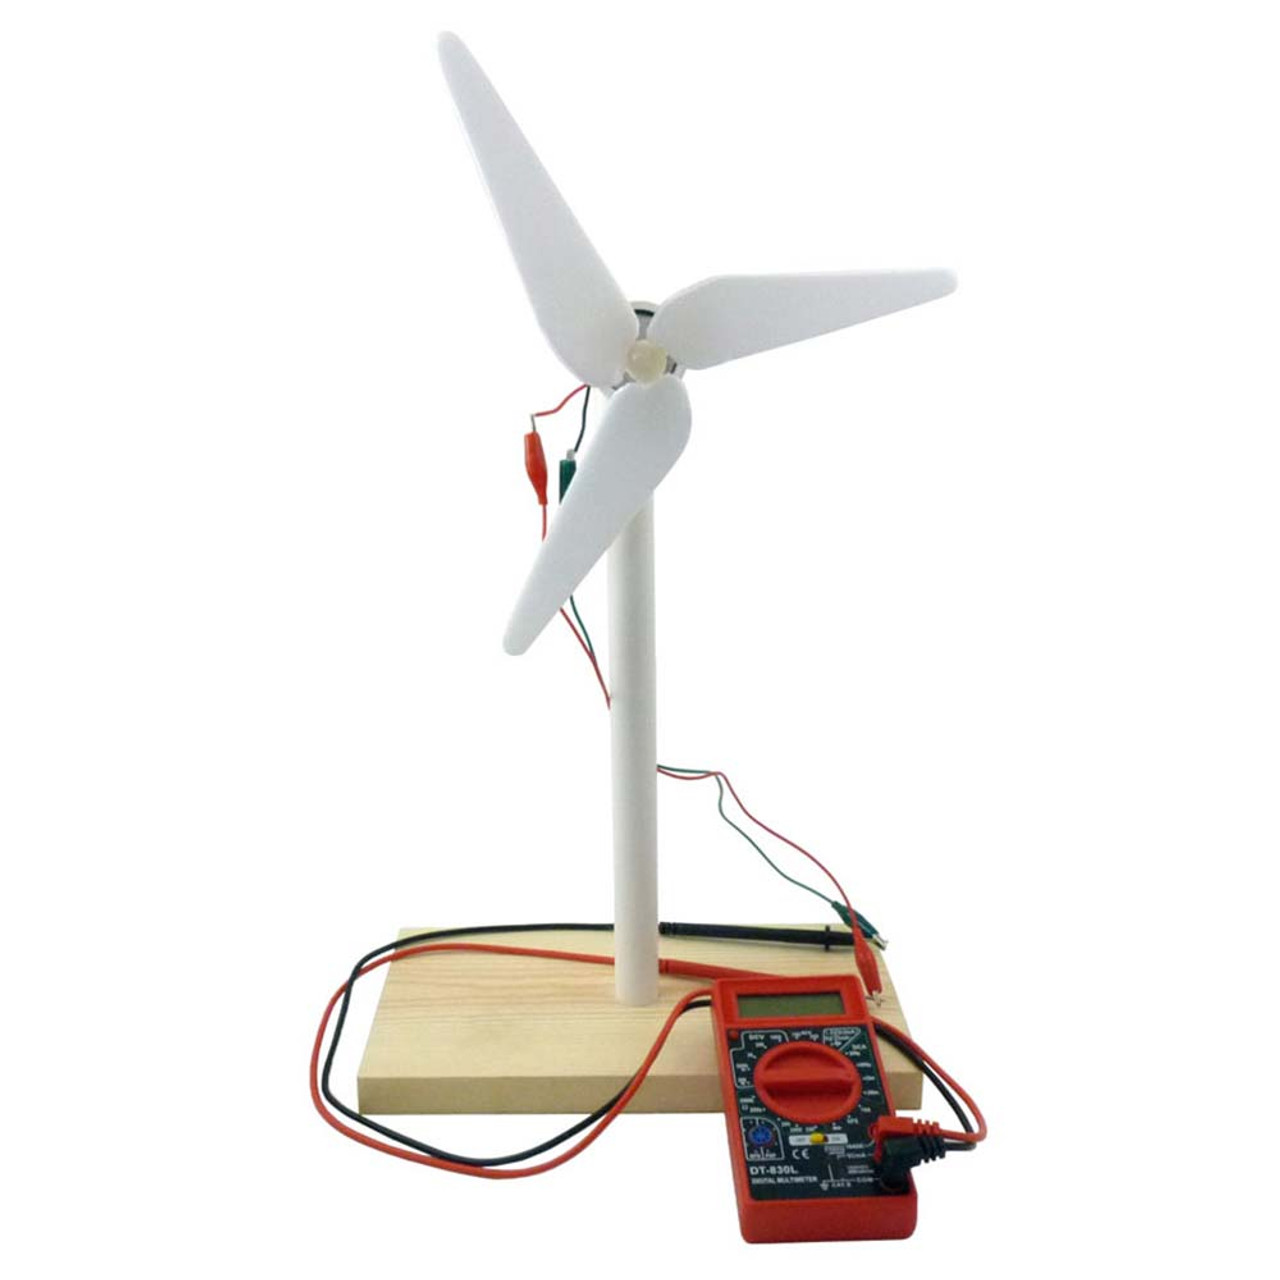 Wind turbine kit for students home science tools item kt winturb wind turbine science kit solutioingenieria Gallery